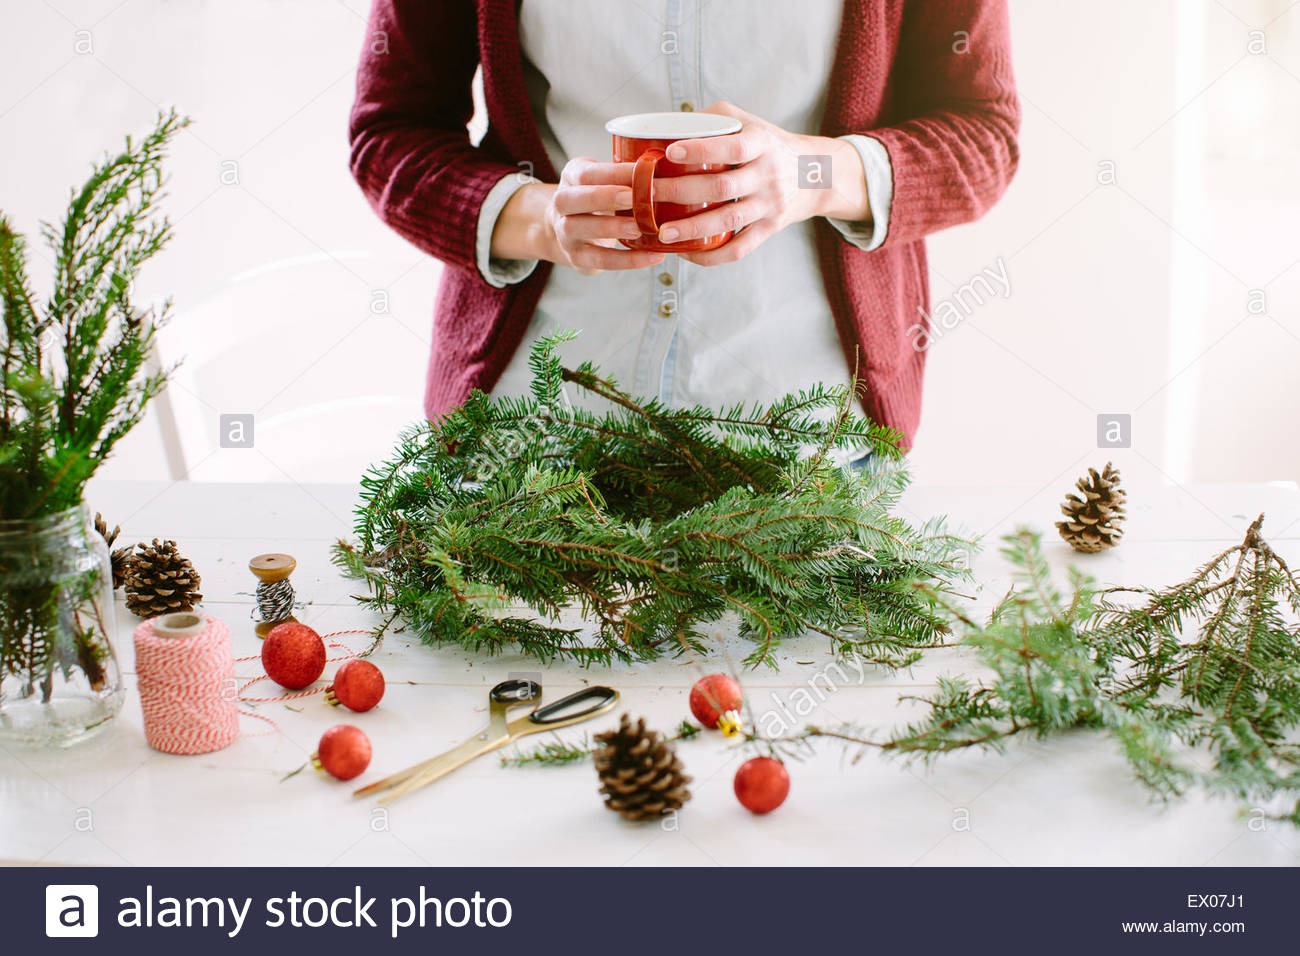 Woman decorating Christmas wreath Photo Stock